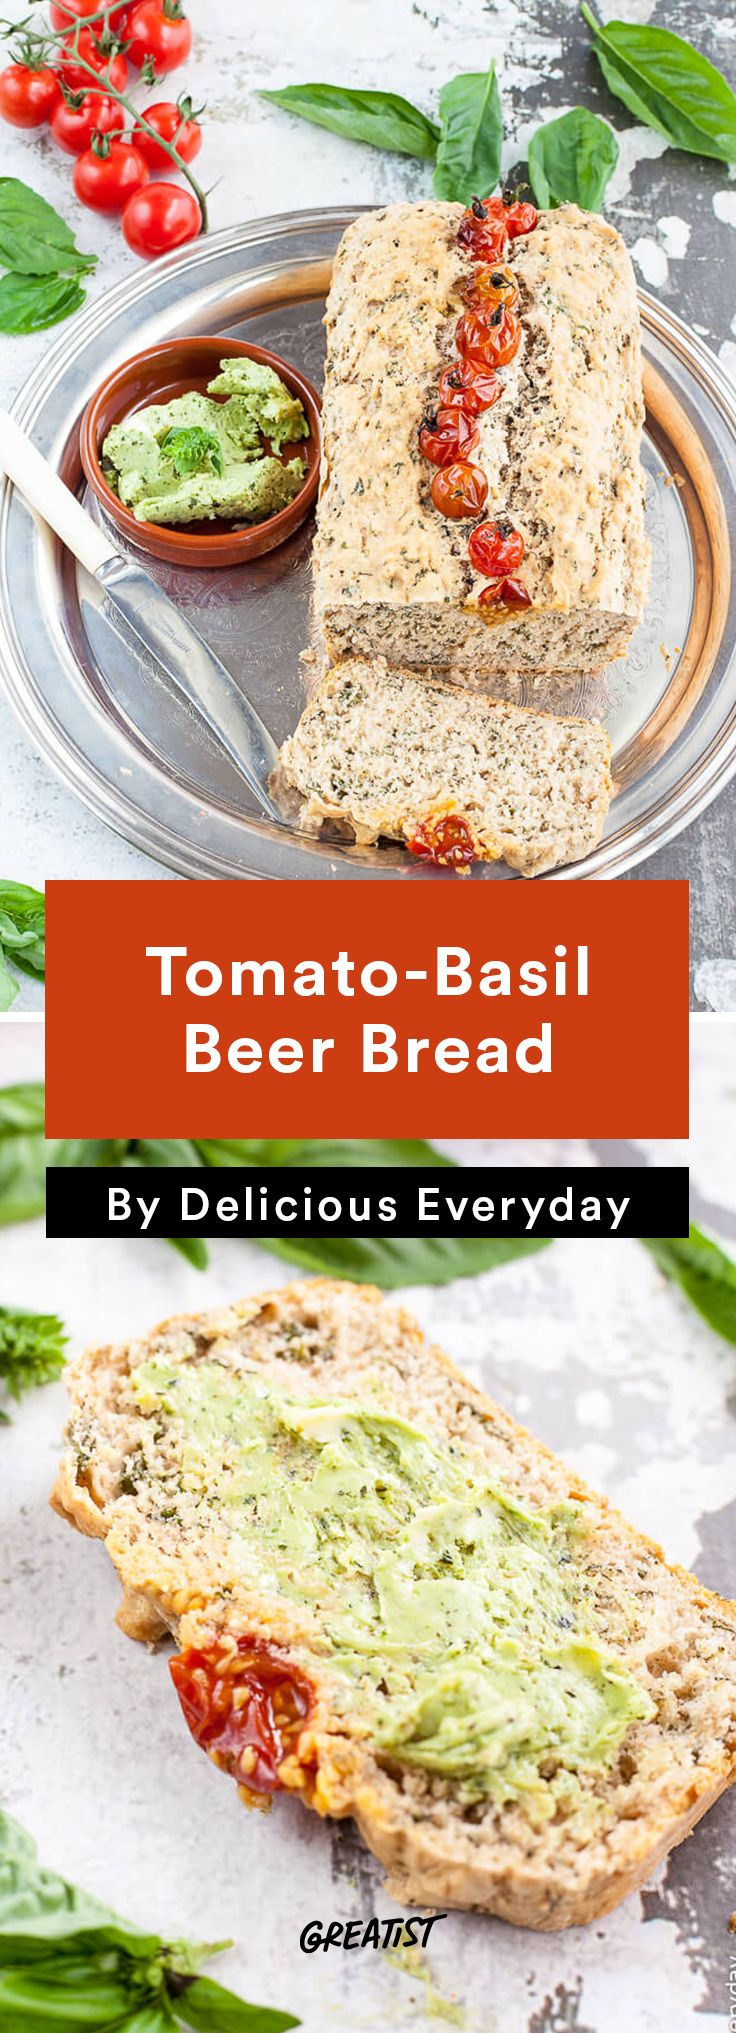 1. Tomato-Basil Beer Bread #healthy #beer #recipes http://greatist.com/eat/cooking-with-beer-recipes-to-always-have-on-tap